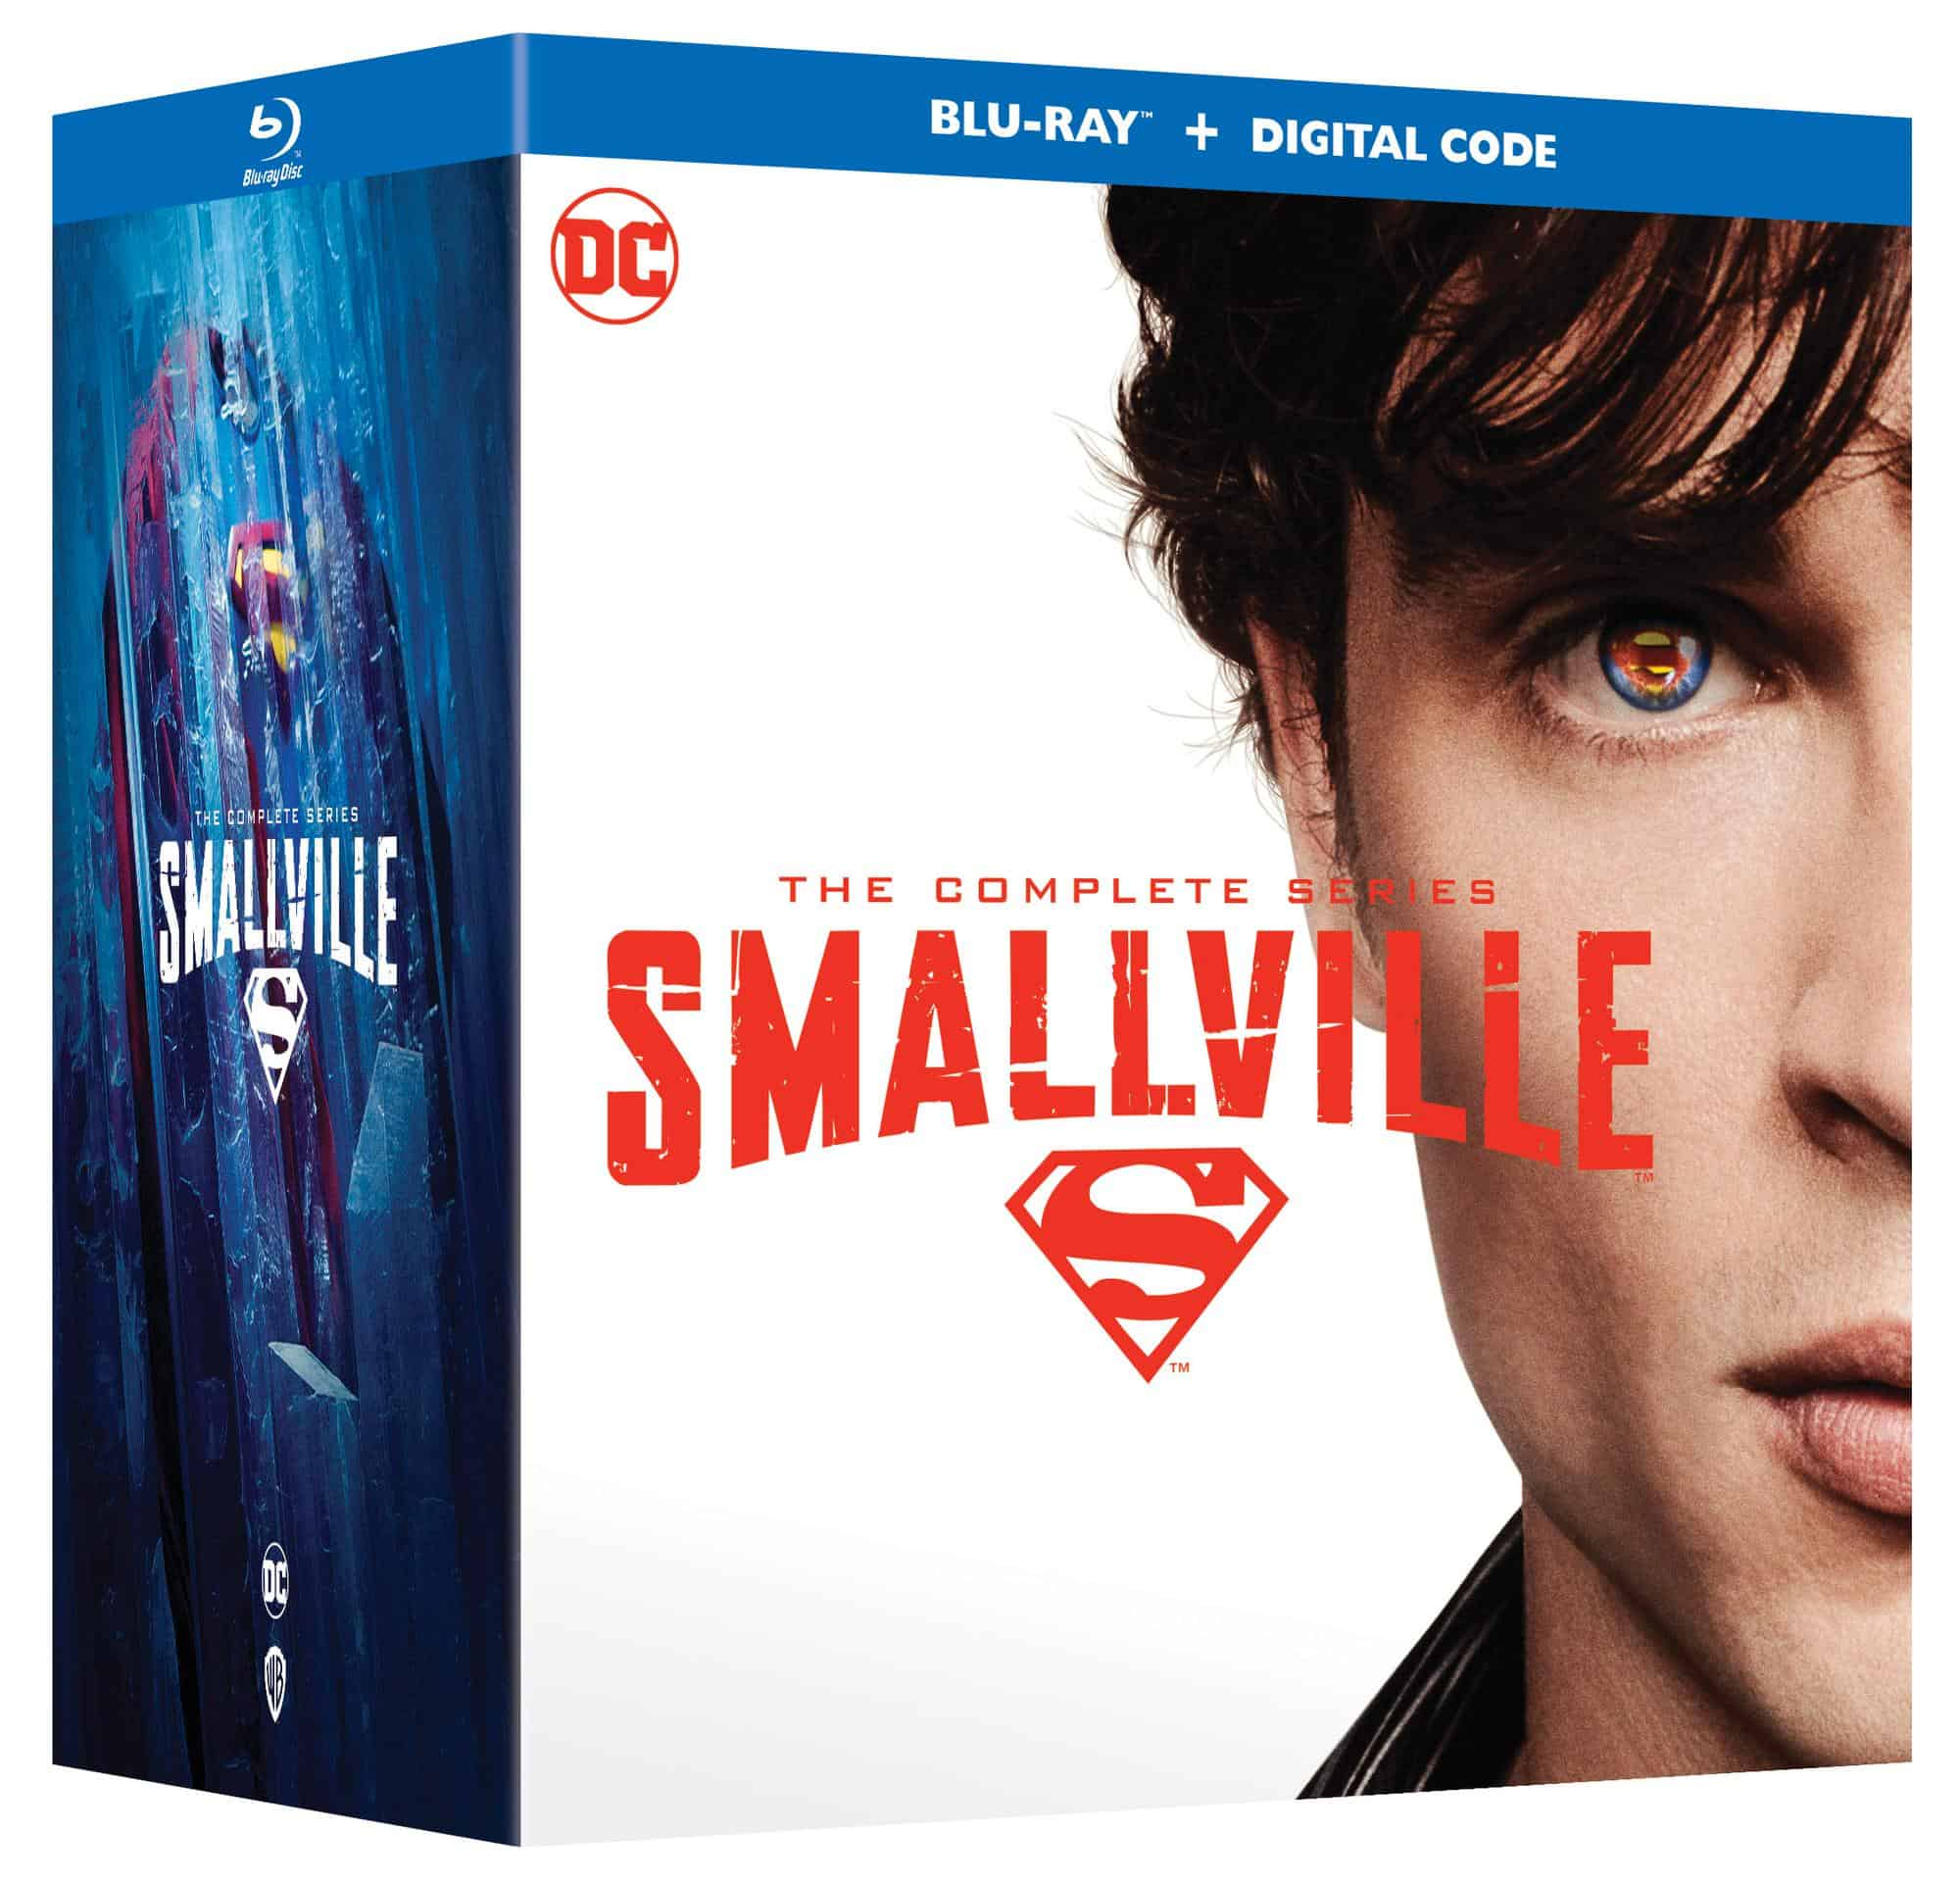 Smallville: The Complete Series 20th Anniversary Edition - Soaring Onto Blu-ray For The First Time Ever On 10/19/21 2